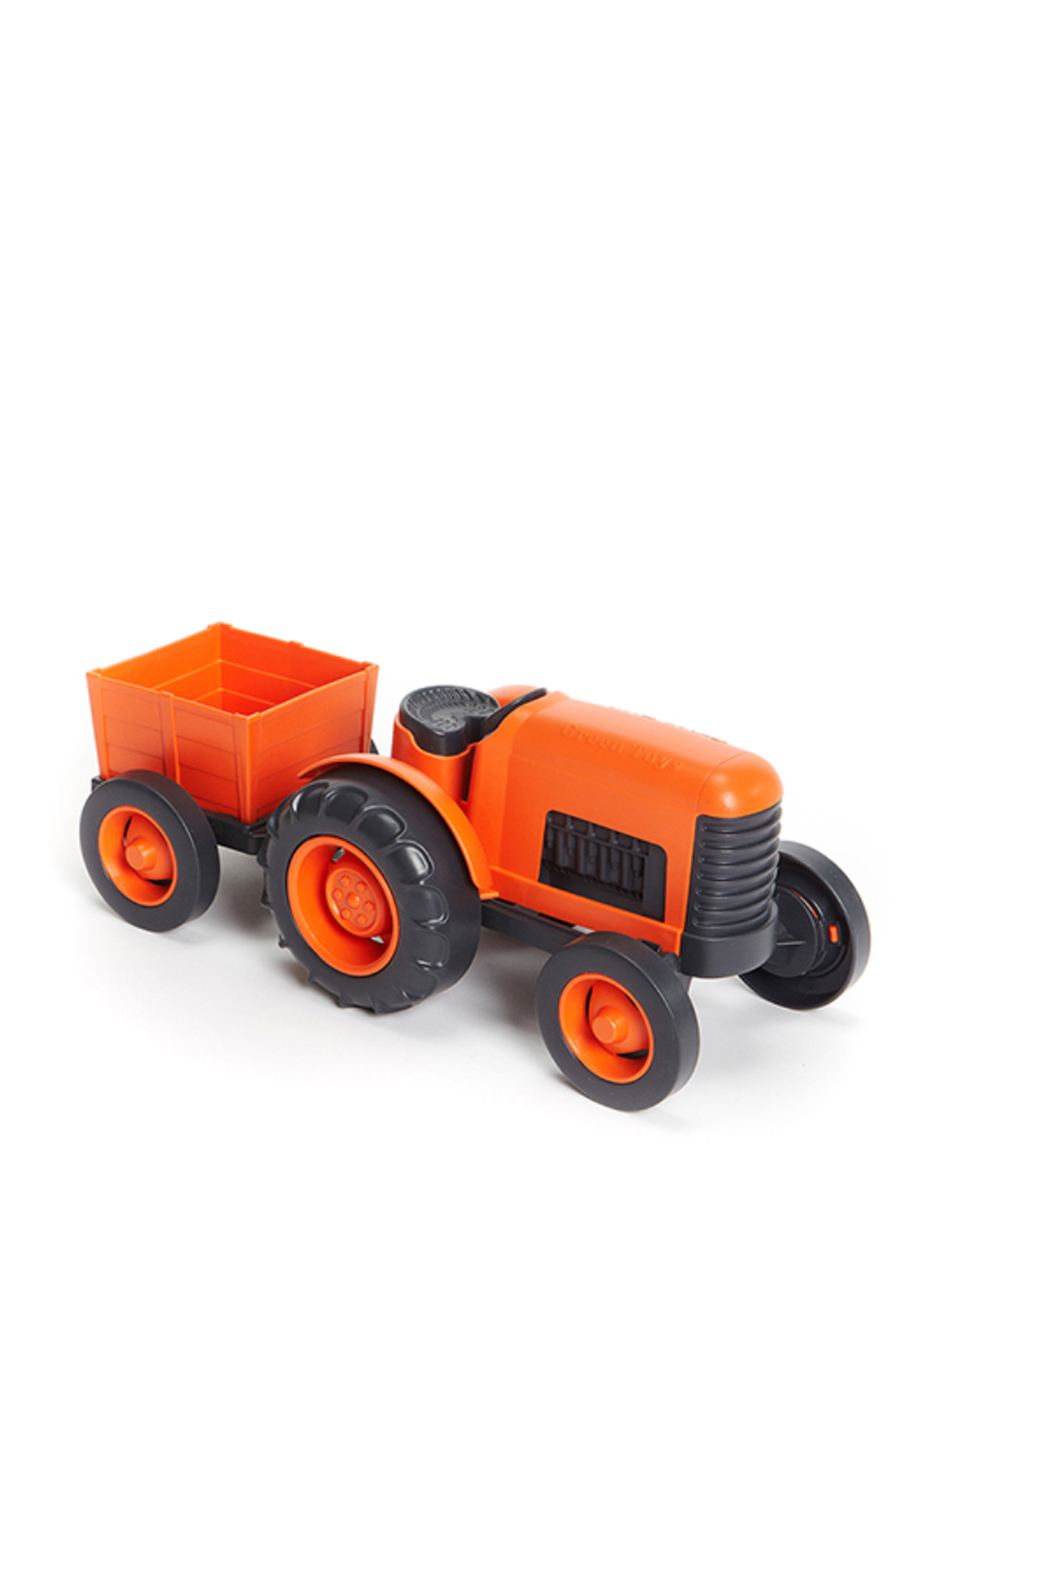 Green Toys Tractor - Main Image